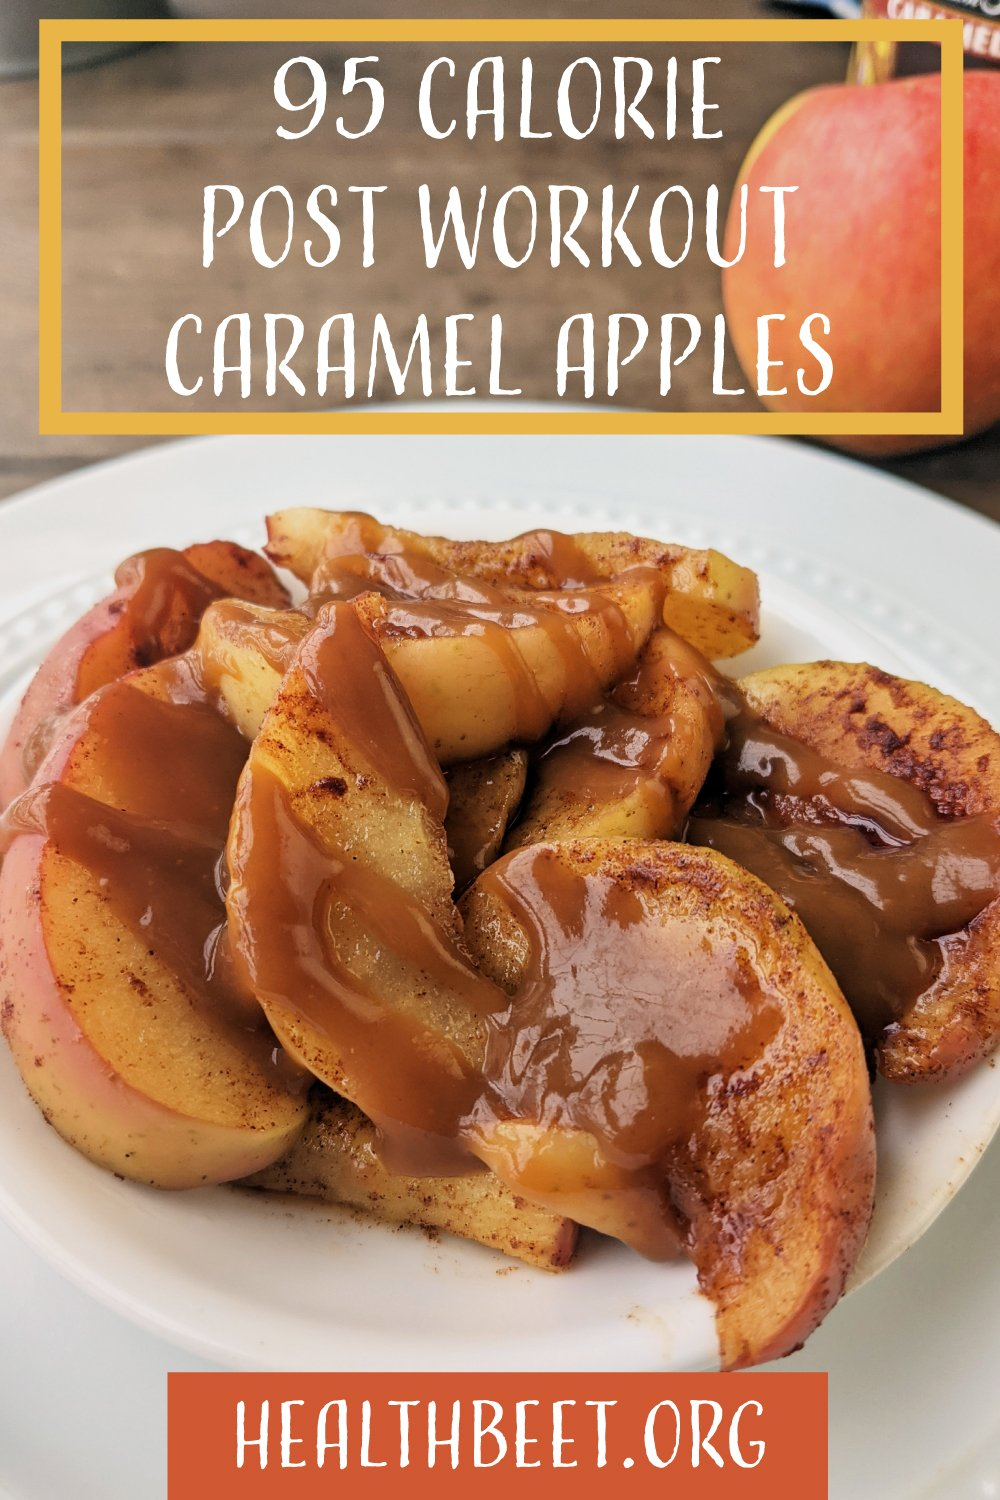 Delicious, quick, and healthy, these are the best caramel apples, and they only have 95 calories and low fat!